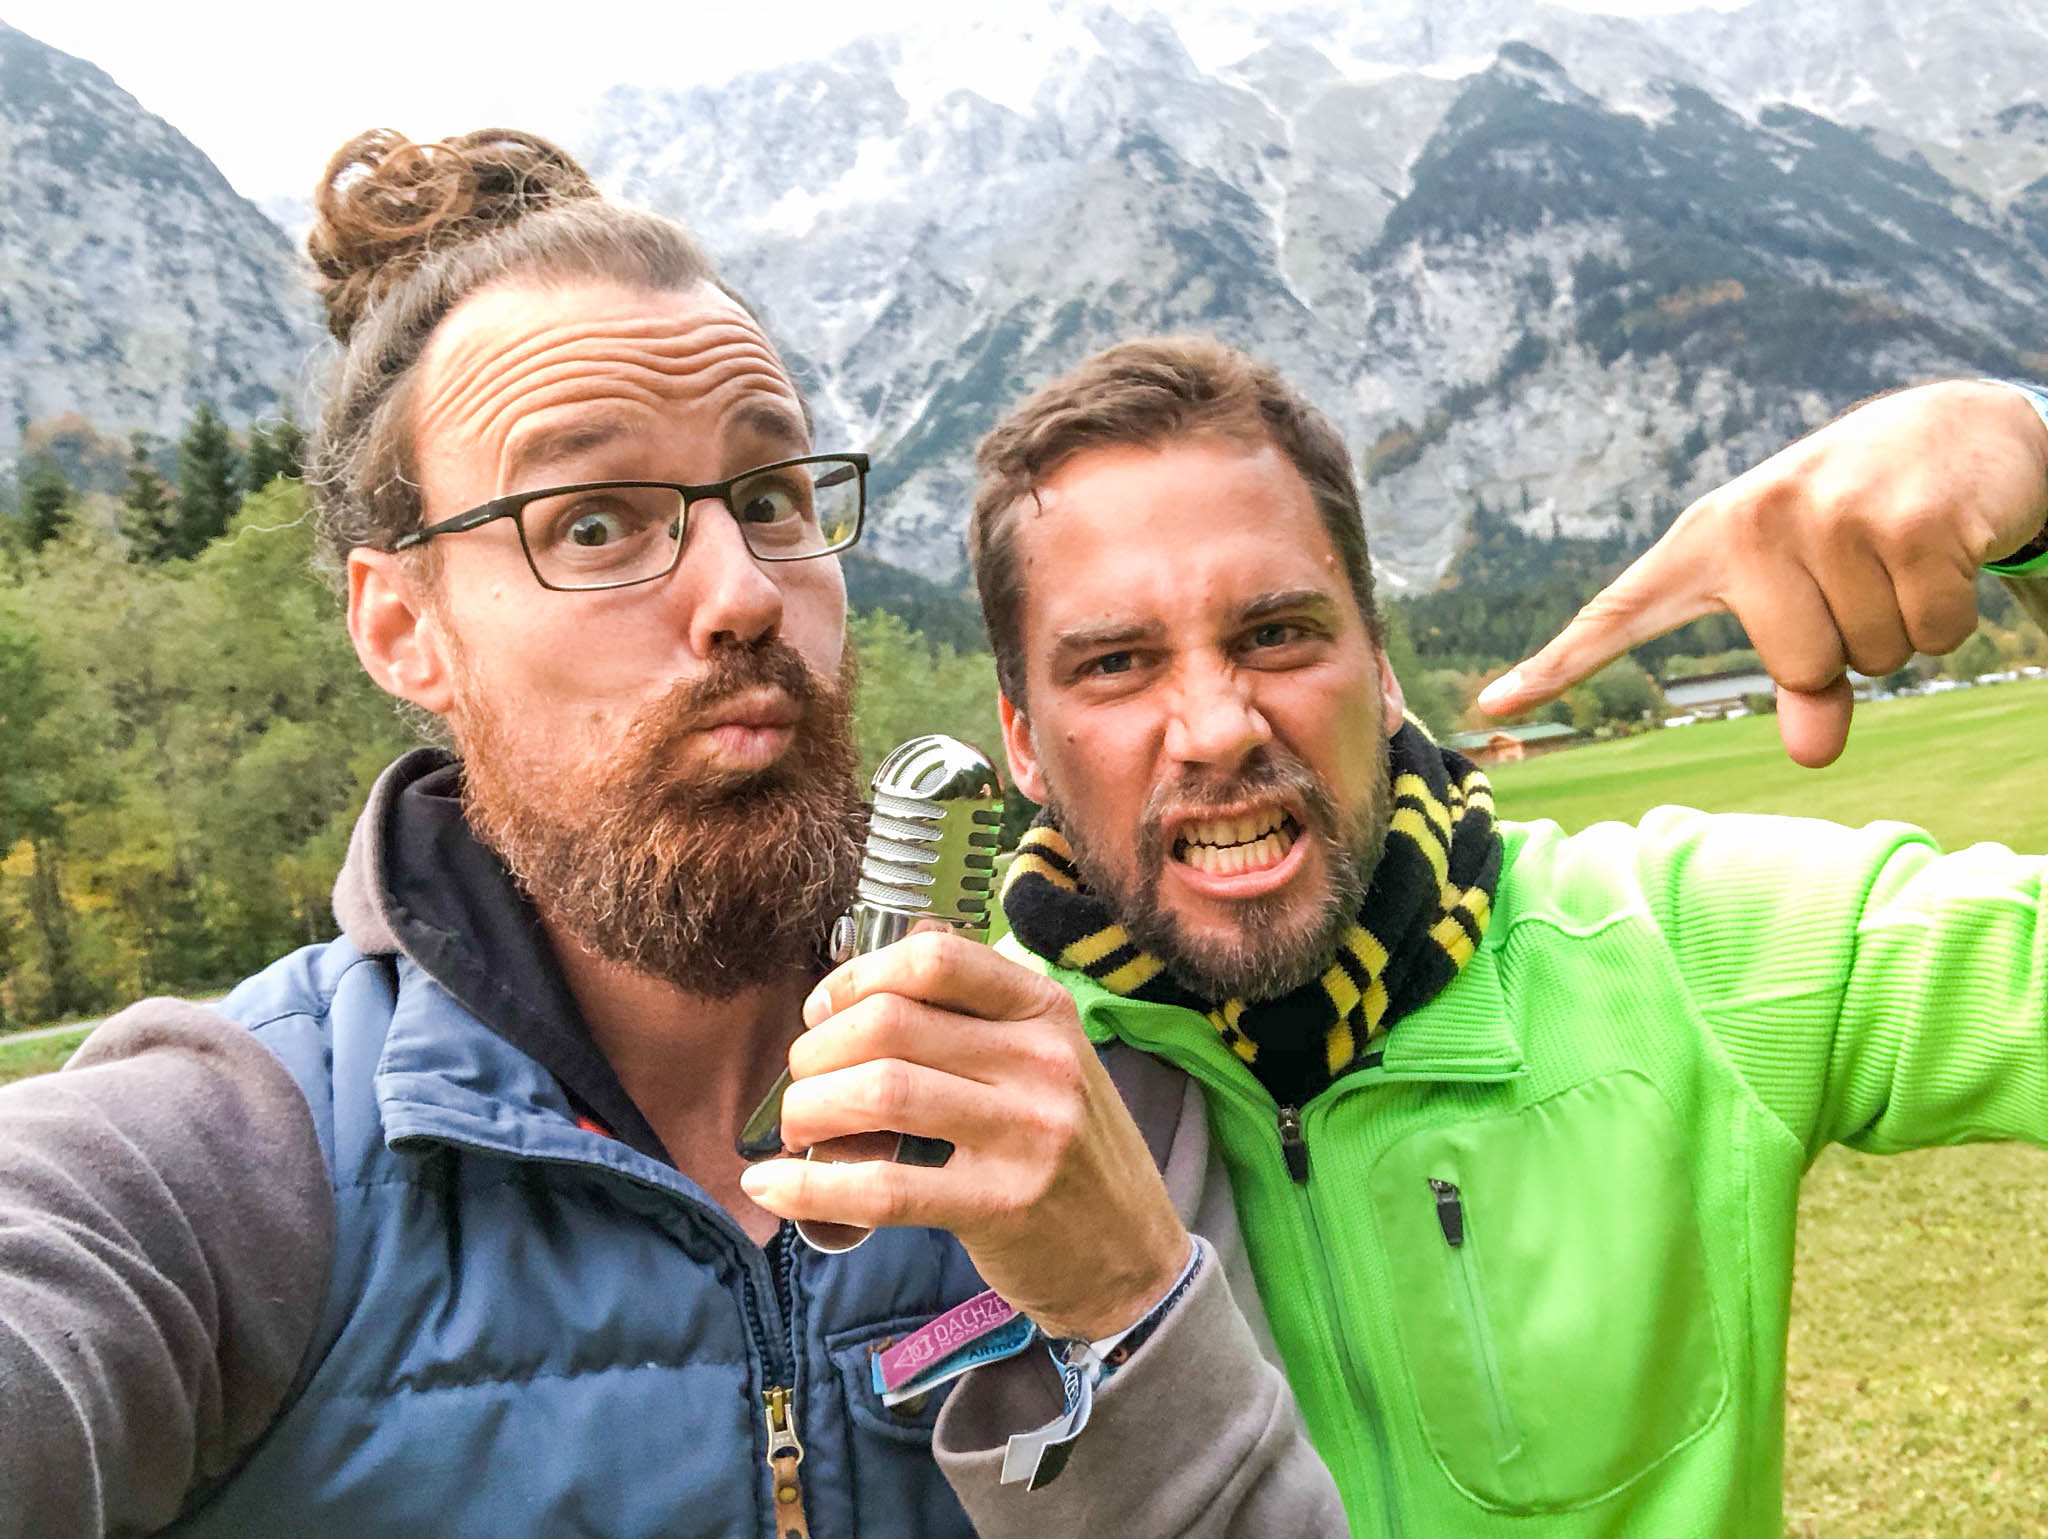 IMG_6366_camper-nomads-podcast-lukas-buerger-personal-training-thilo-vogel-vogel-adventure_001